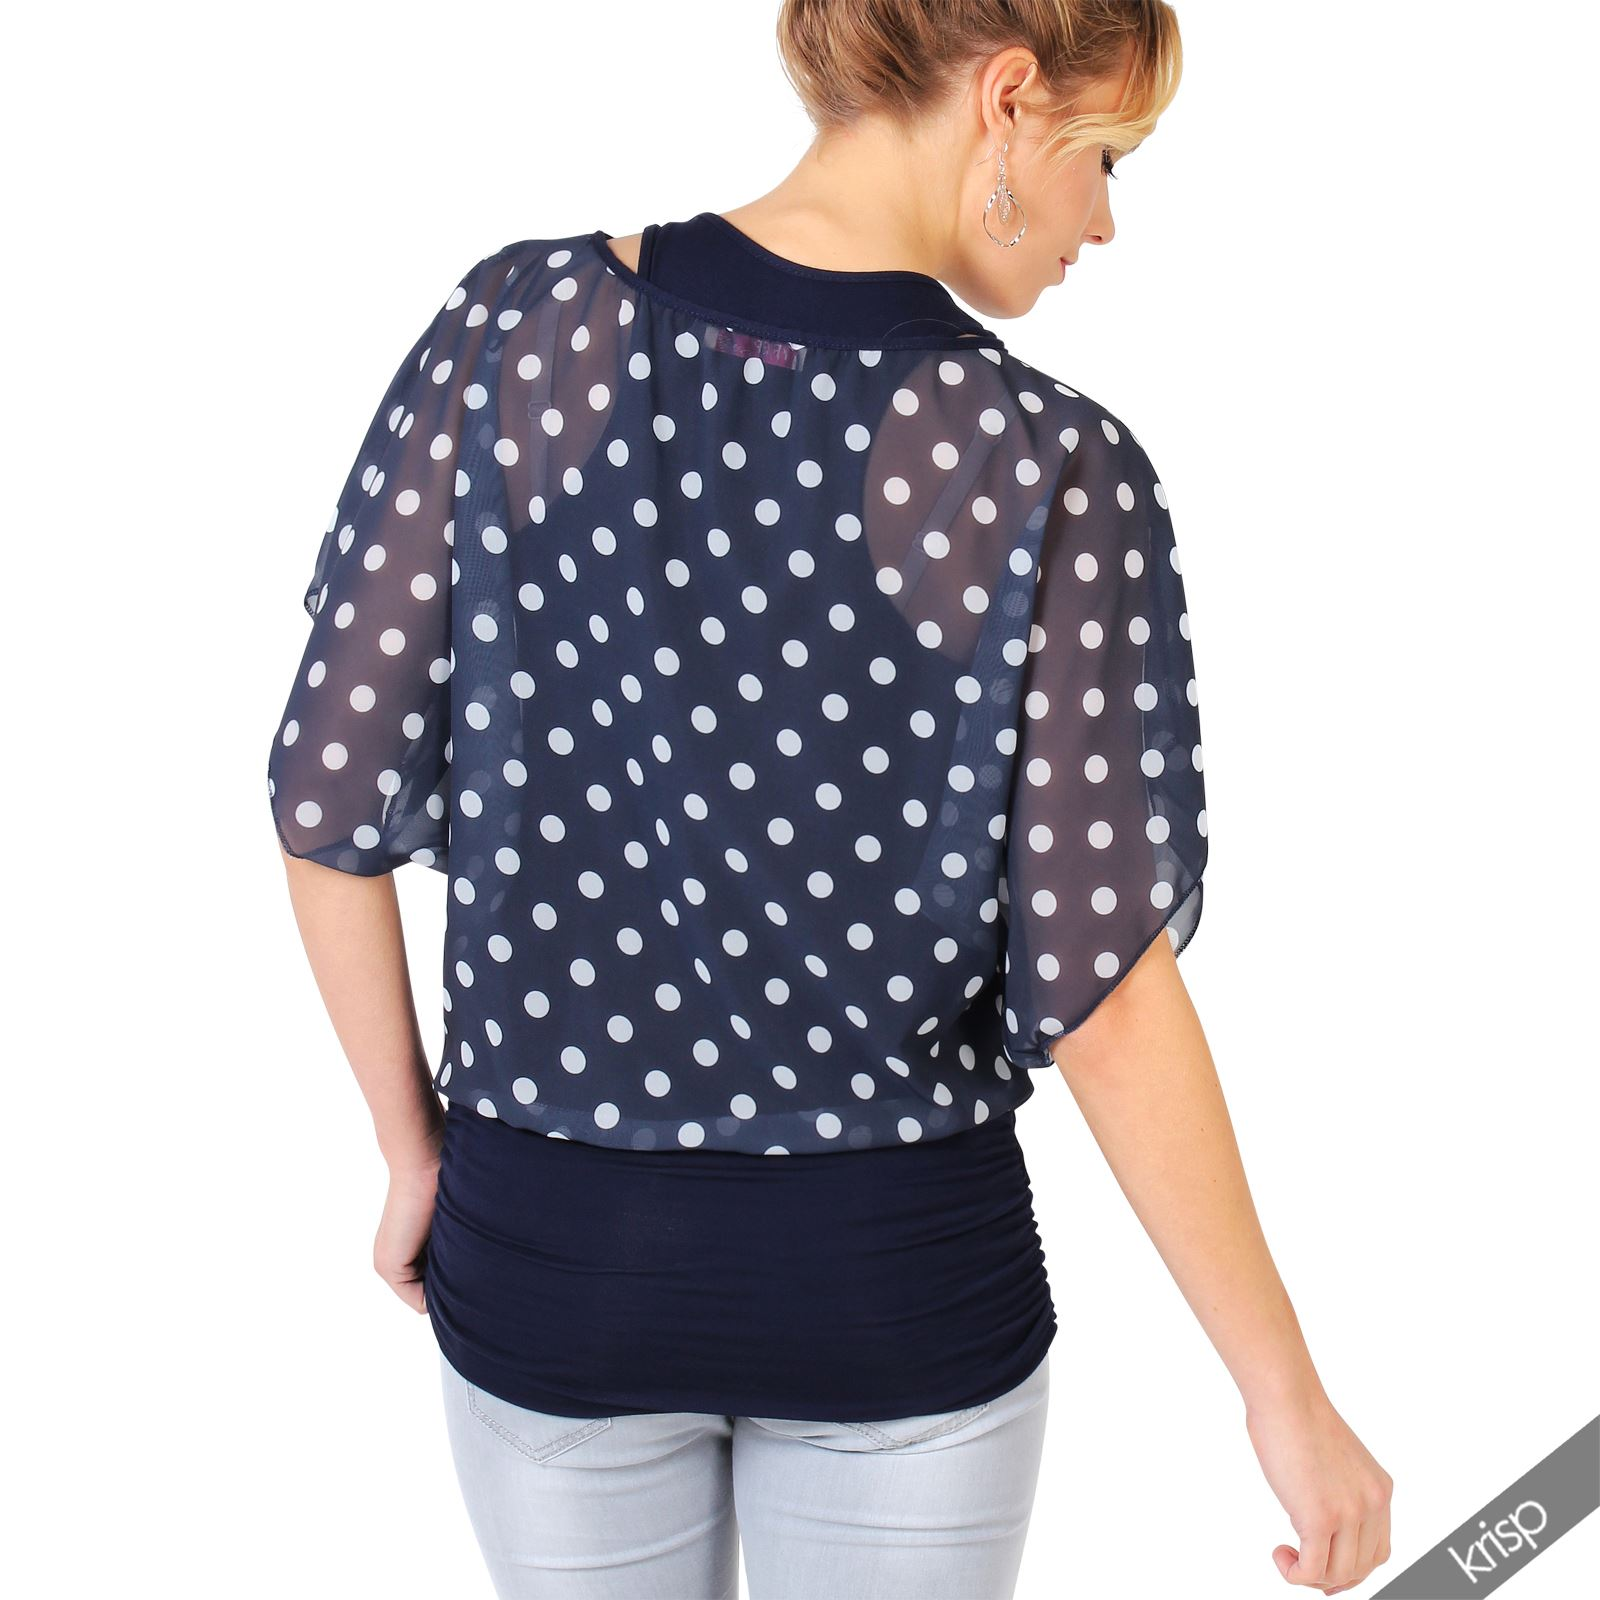 Womens-2-in-1-Polka-Dot-Cape-Kimono-Oversize-Batwing-Top-Chiffon-Blouse-Party